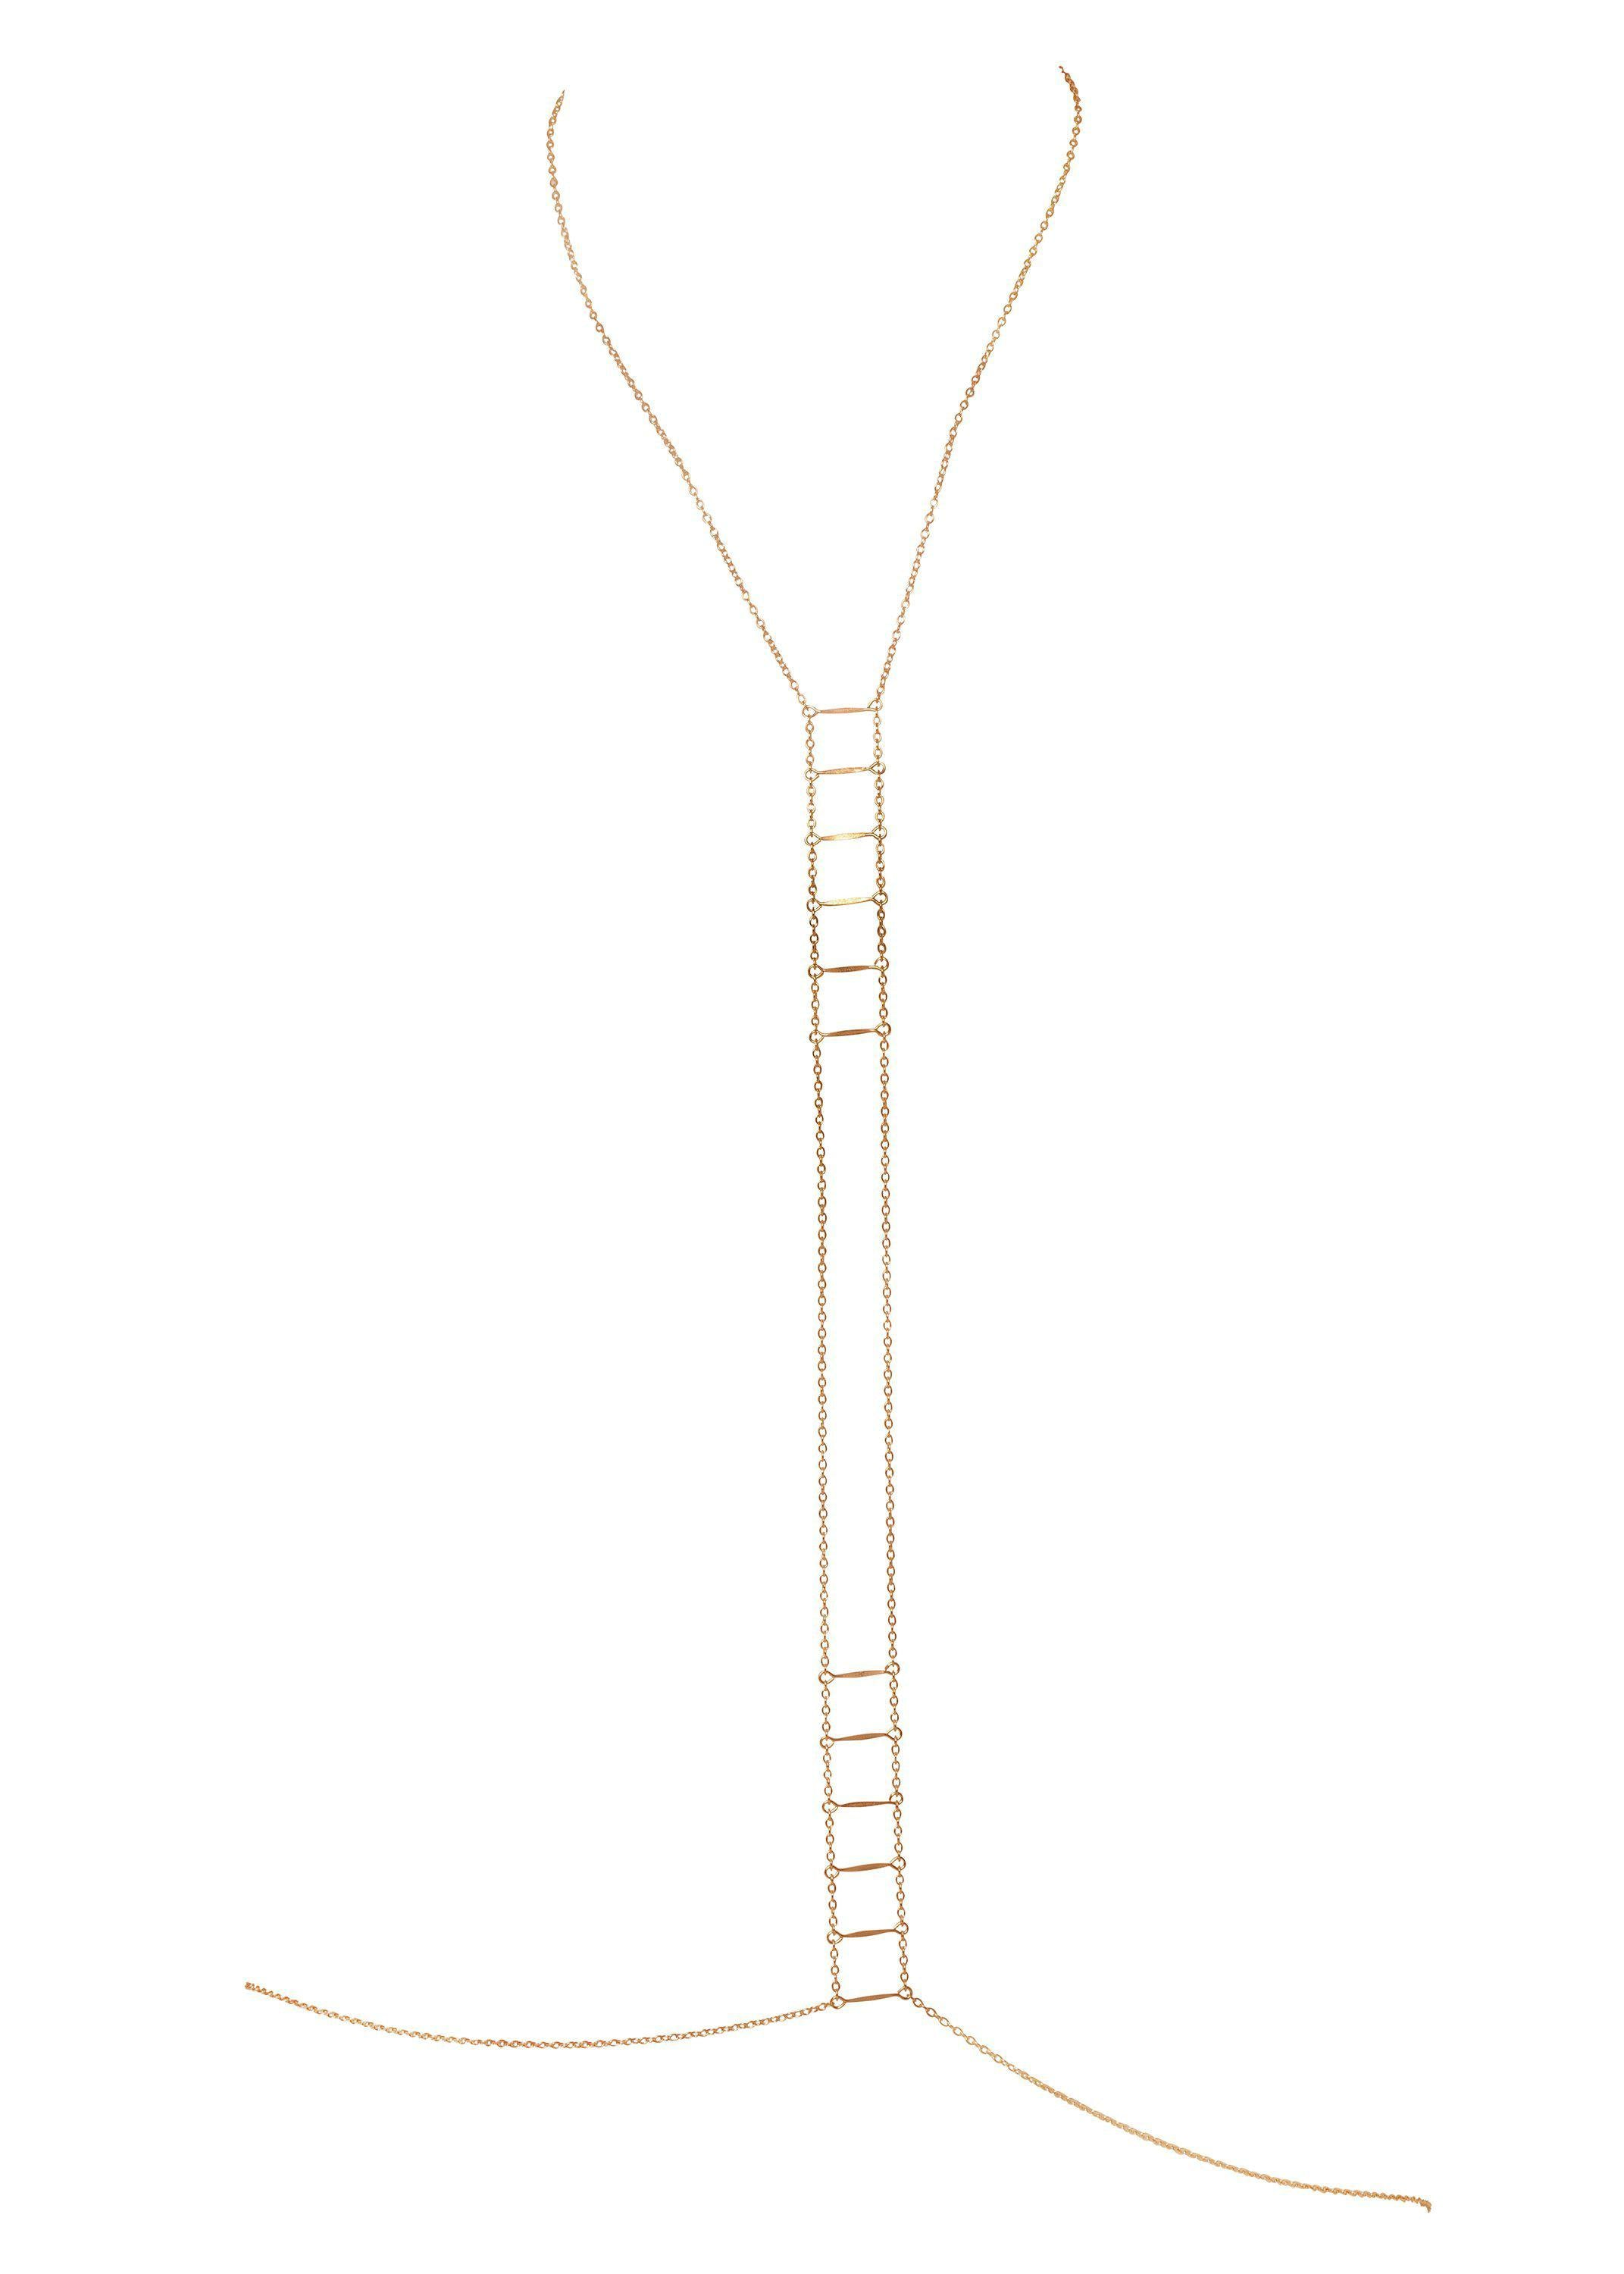 Ladders to Bliss Bodychain - Goldish